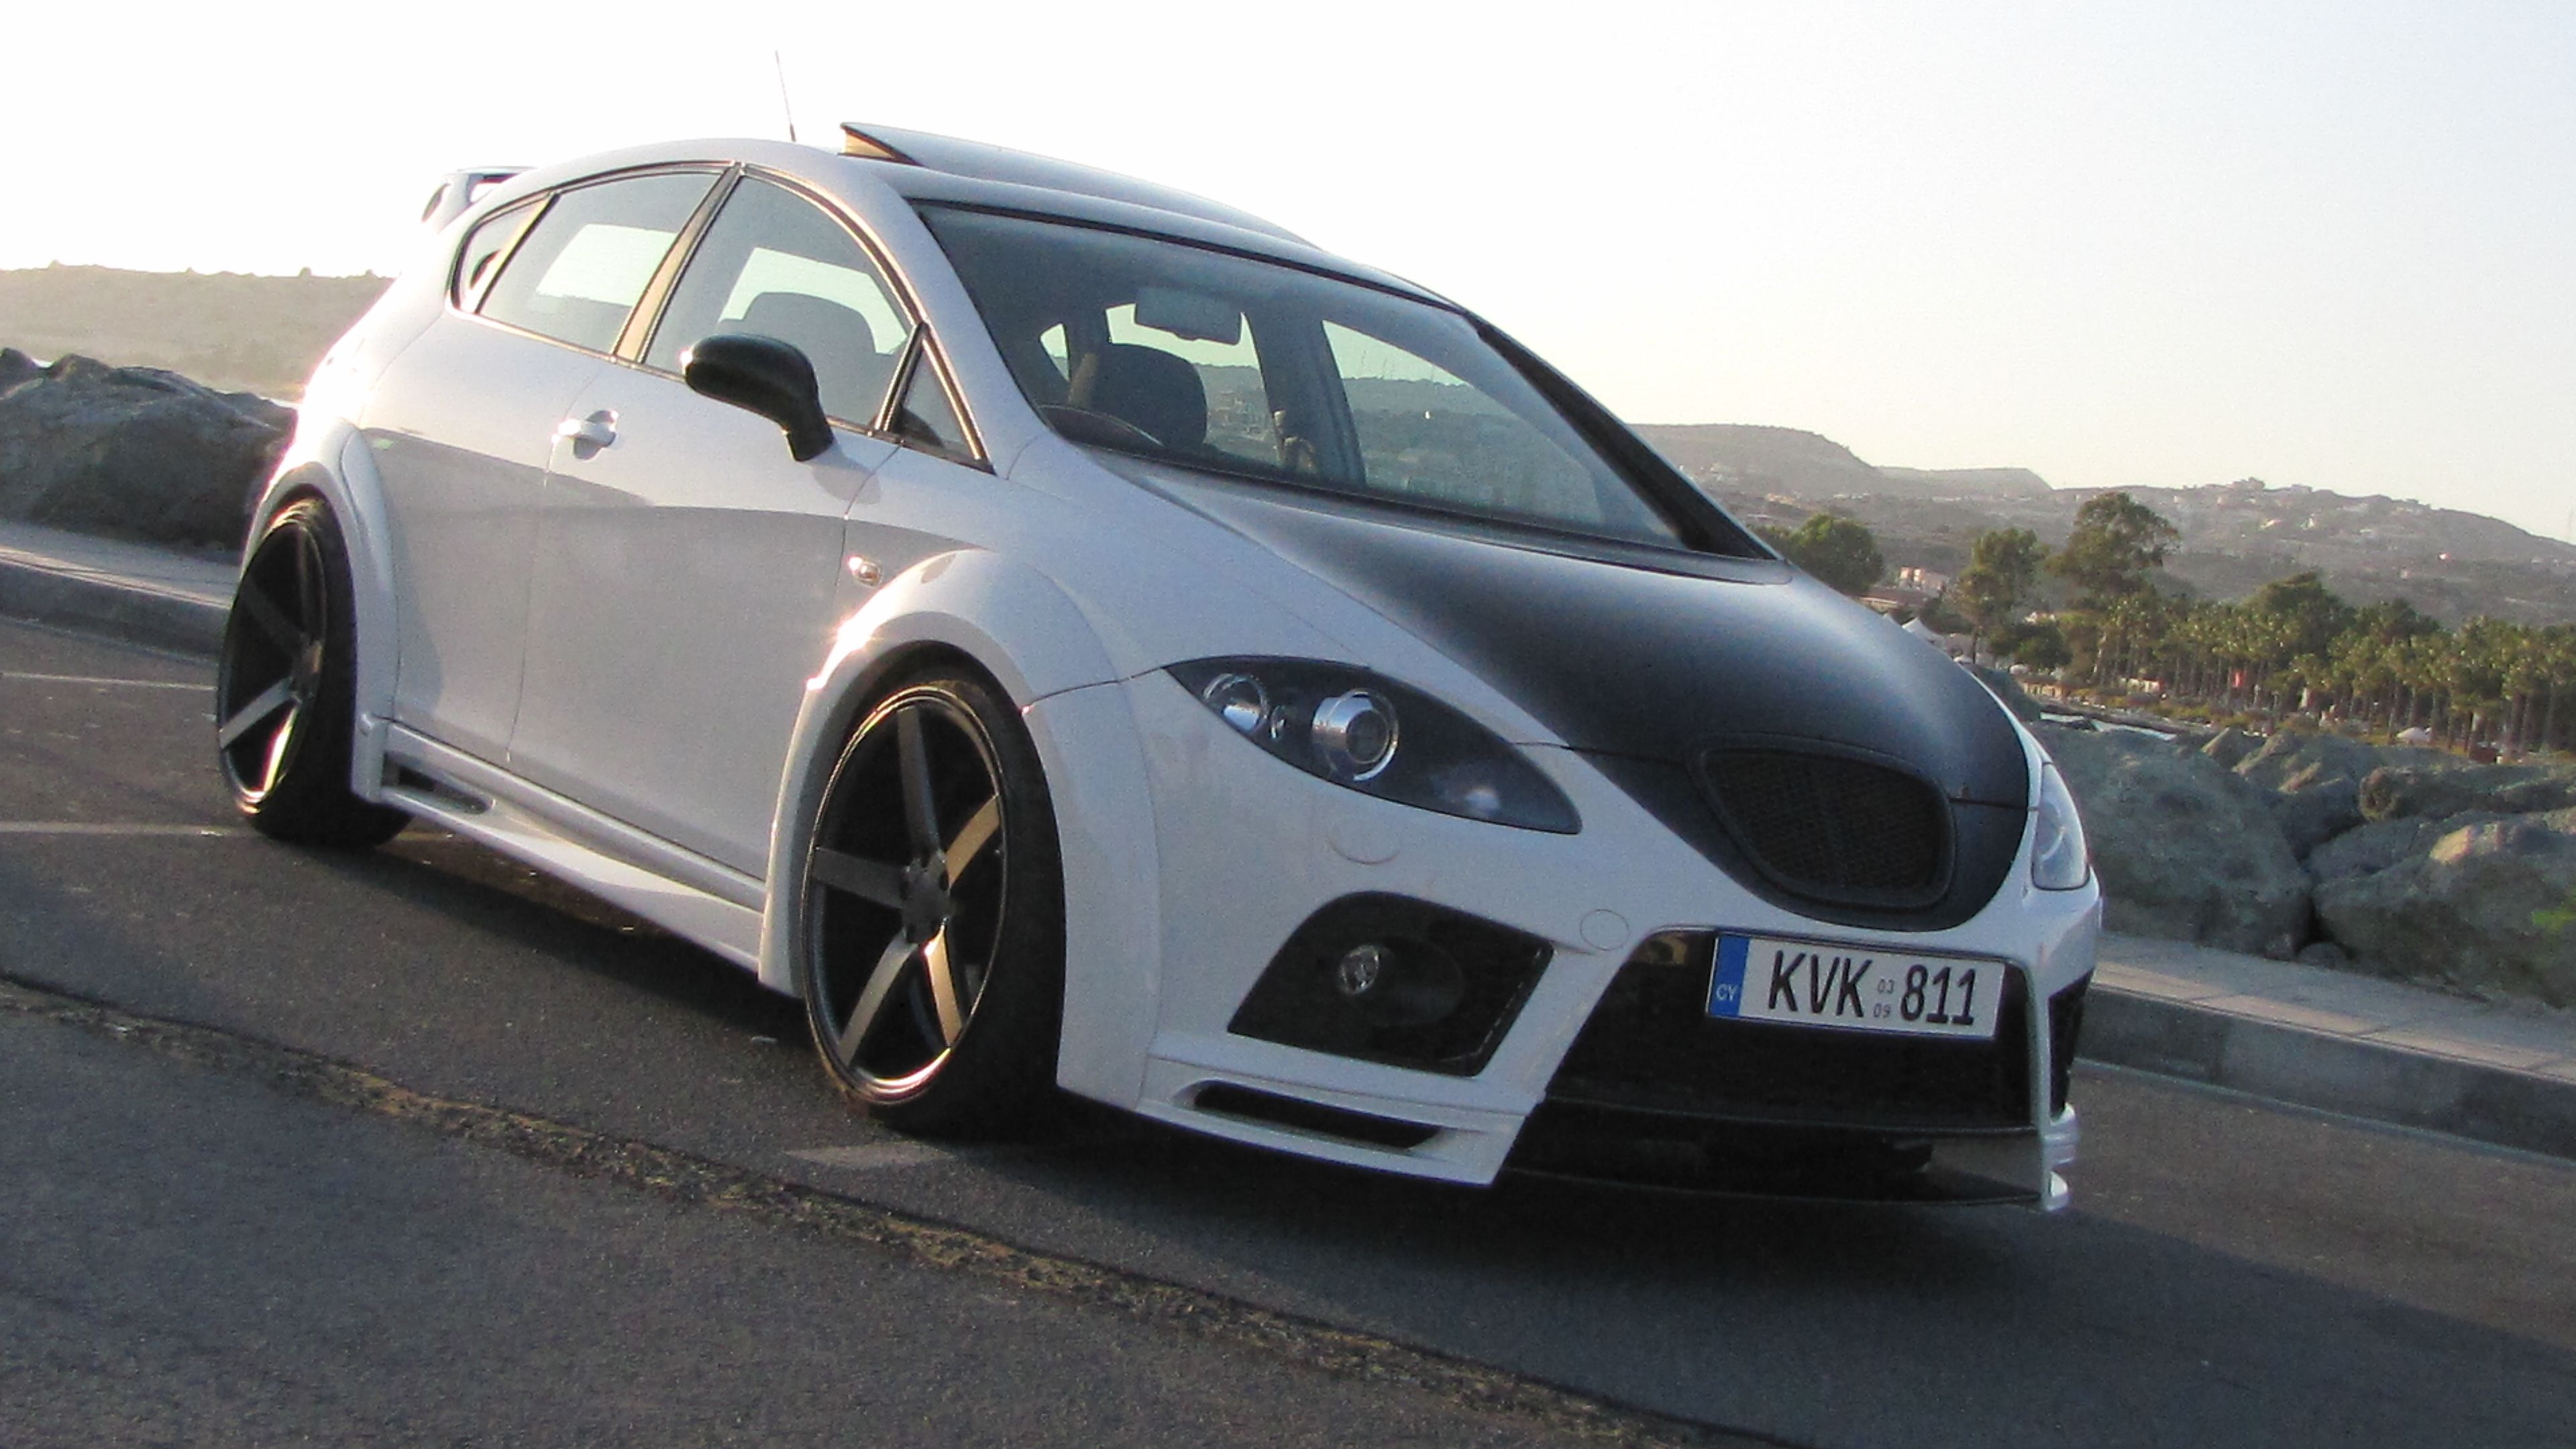 seat leon 1p vossen wheels cv3 customer submissions. Black Bedroom Furniture Sets. Home Design Ideas